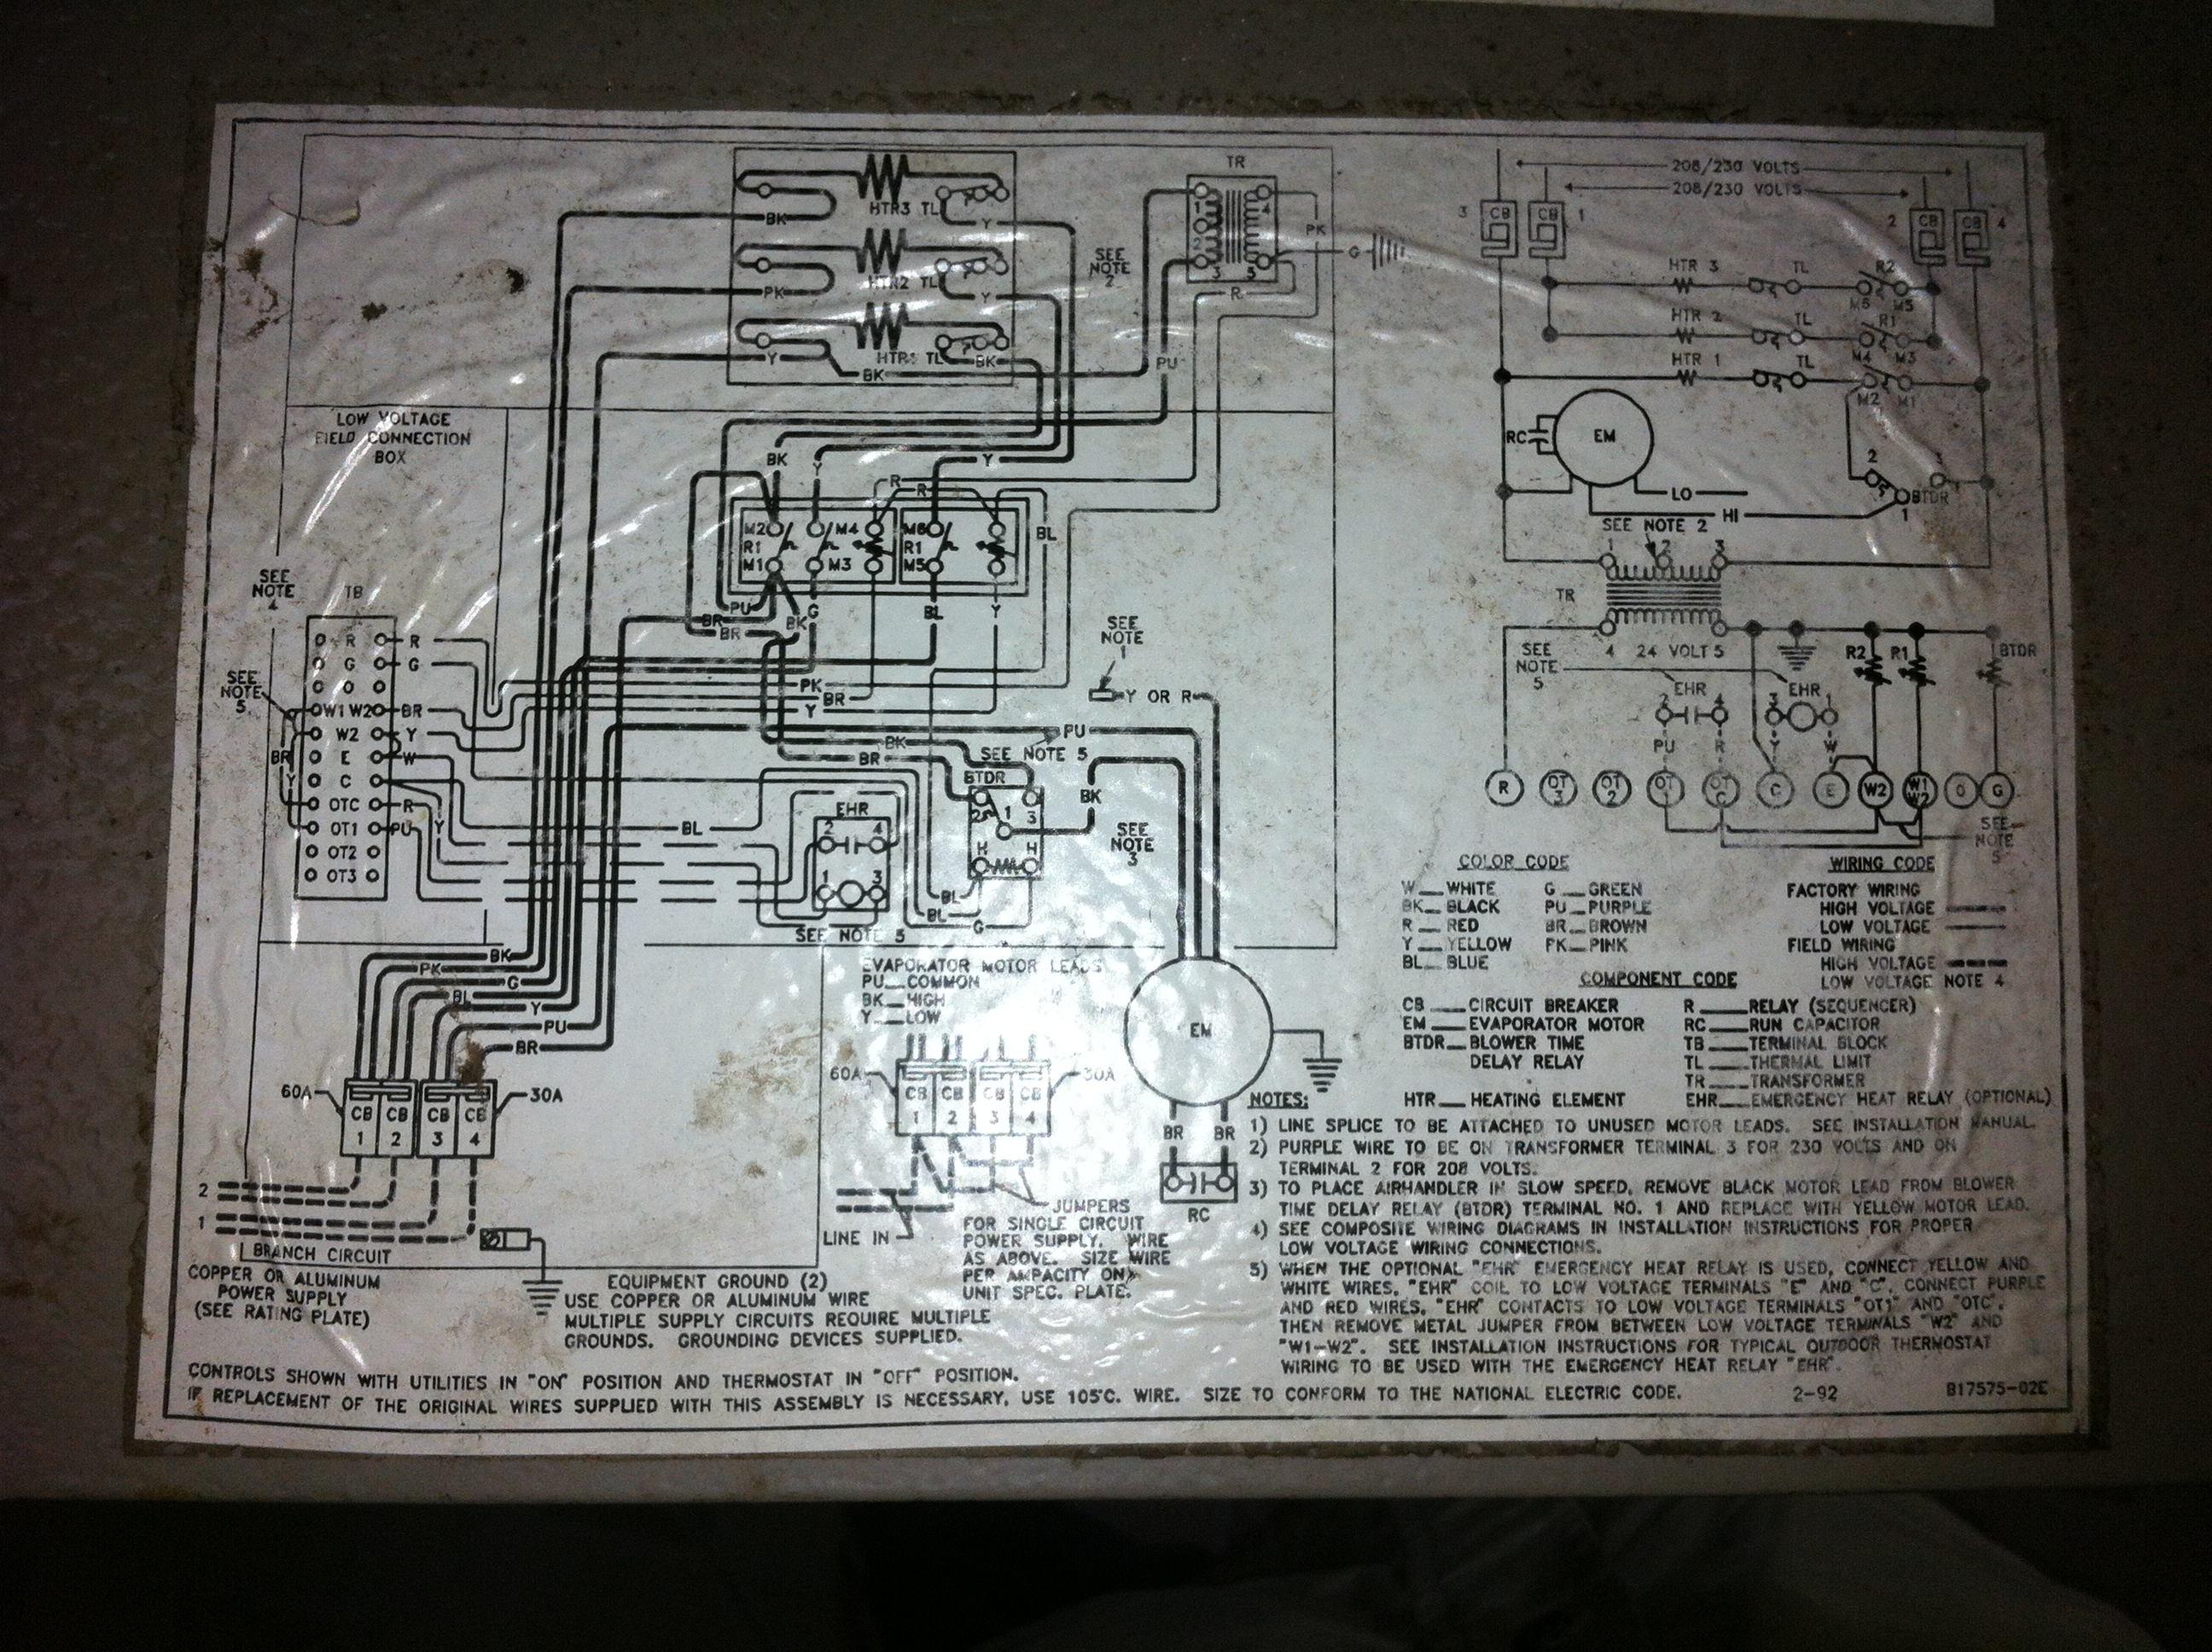 Goodman A36 10 Wiring Diagram 29 Images Heat Pump Air Handler 2012 04 15 010529 Img 0035 My Janitrol Continues To Run In